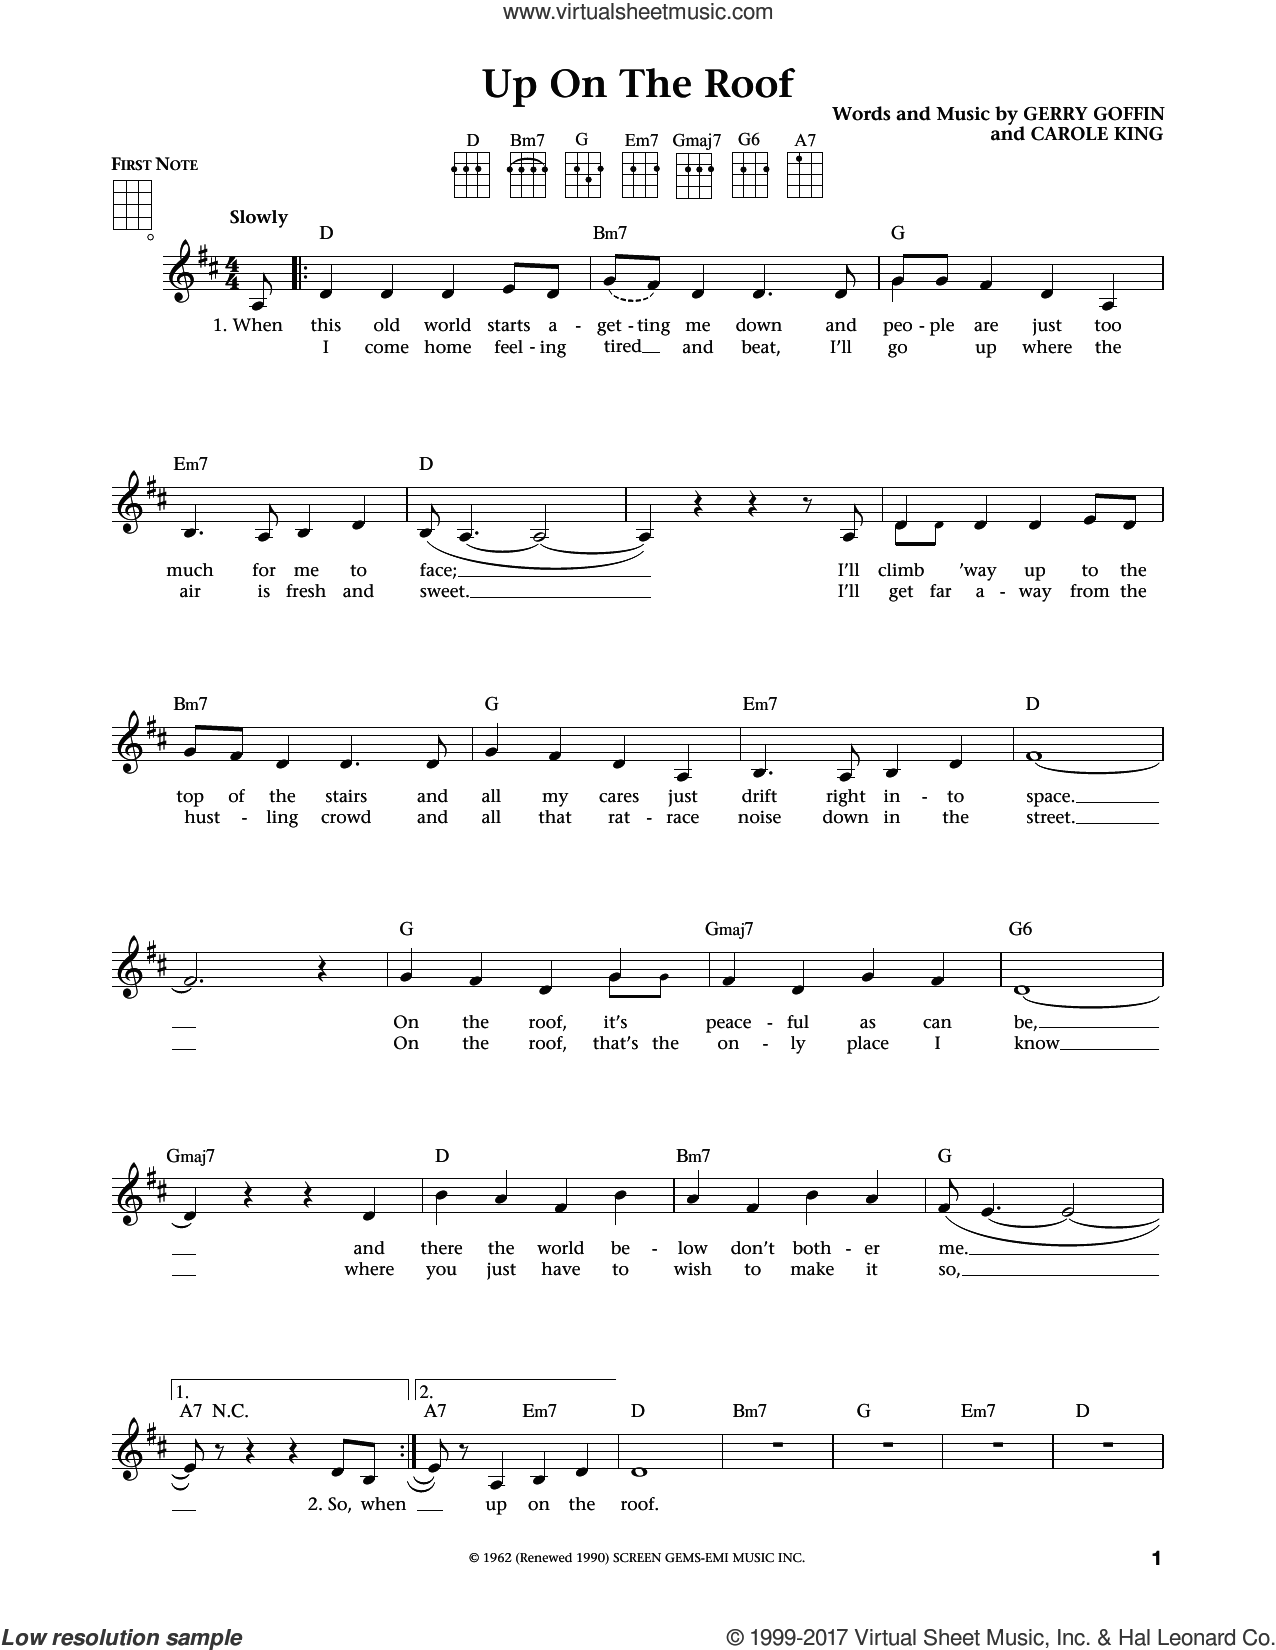 Up On The Roof (from The Daily Ukulele) (arr. Liz and Jim Beloff) sheet music for ukulele by The Drifters, Jim Beloff, Liz Beloff, Carole King and Gerry Goffin, intermediate skill level